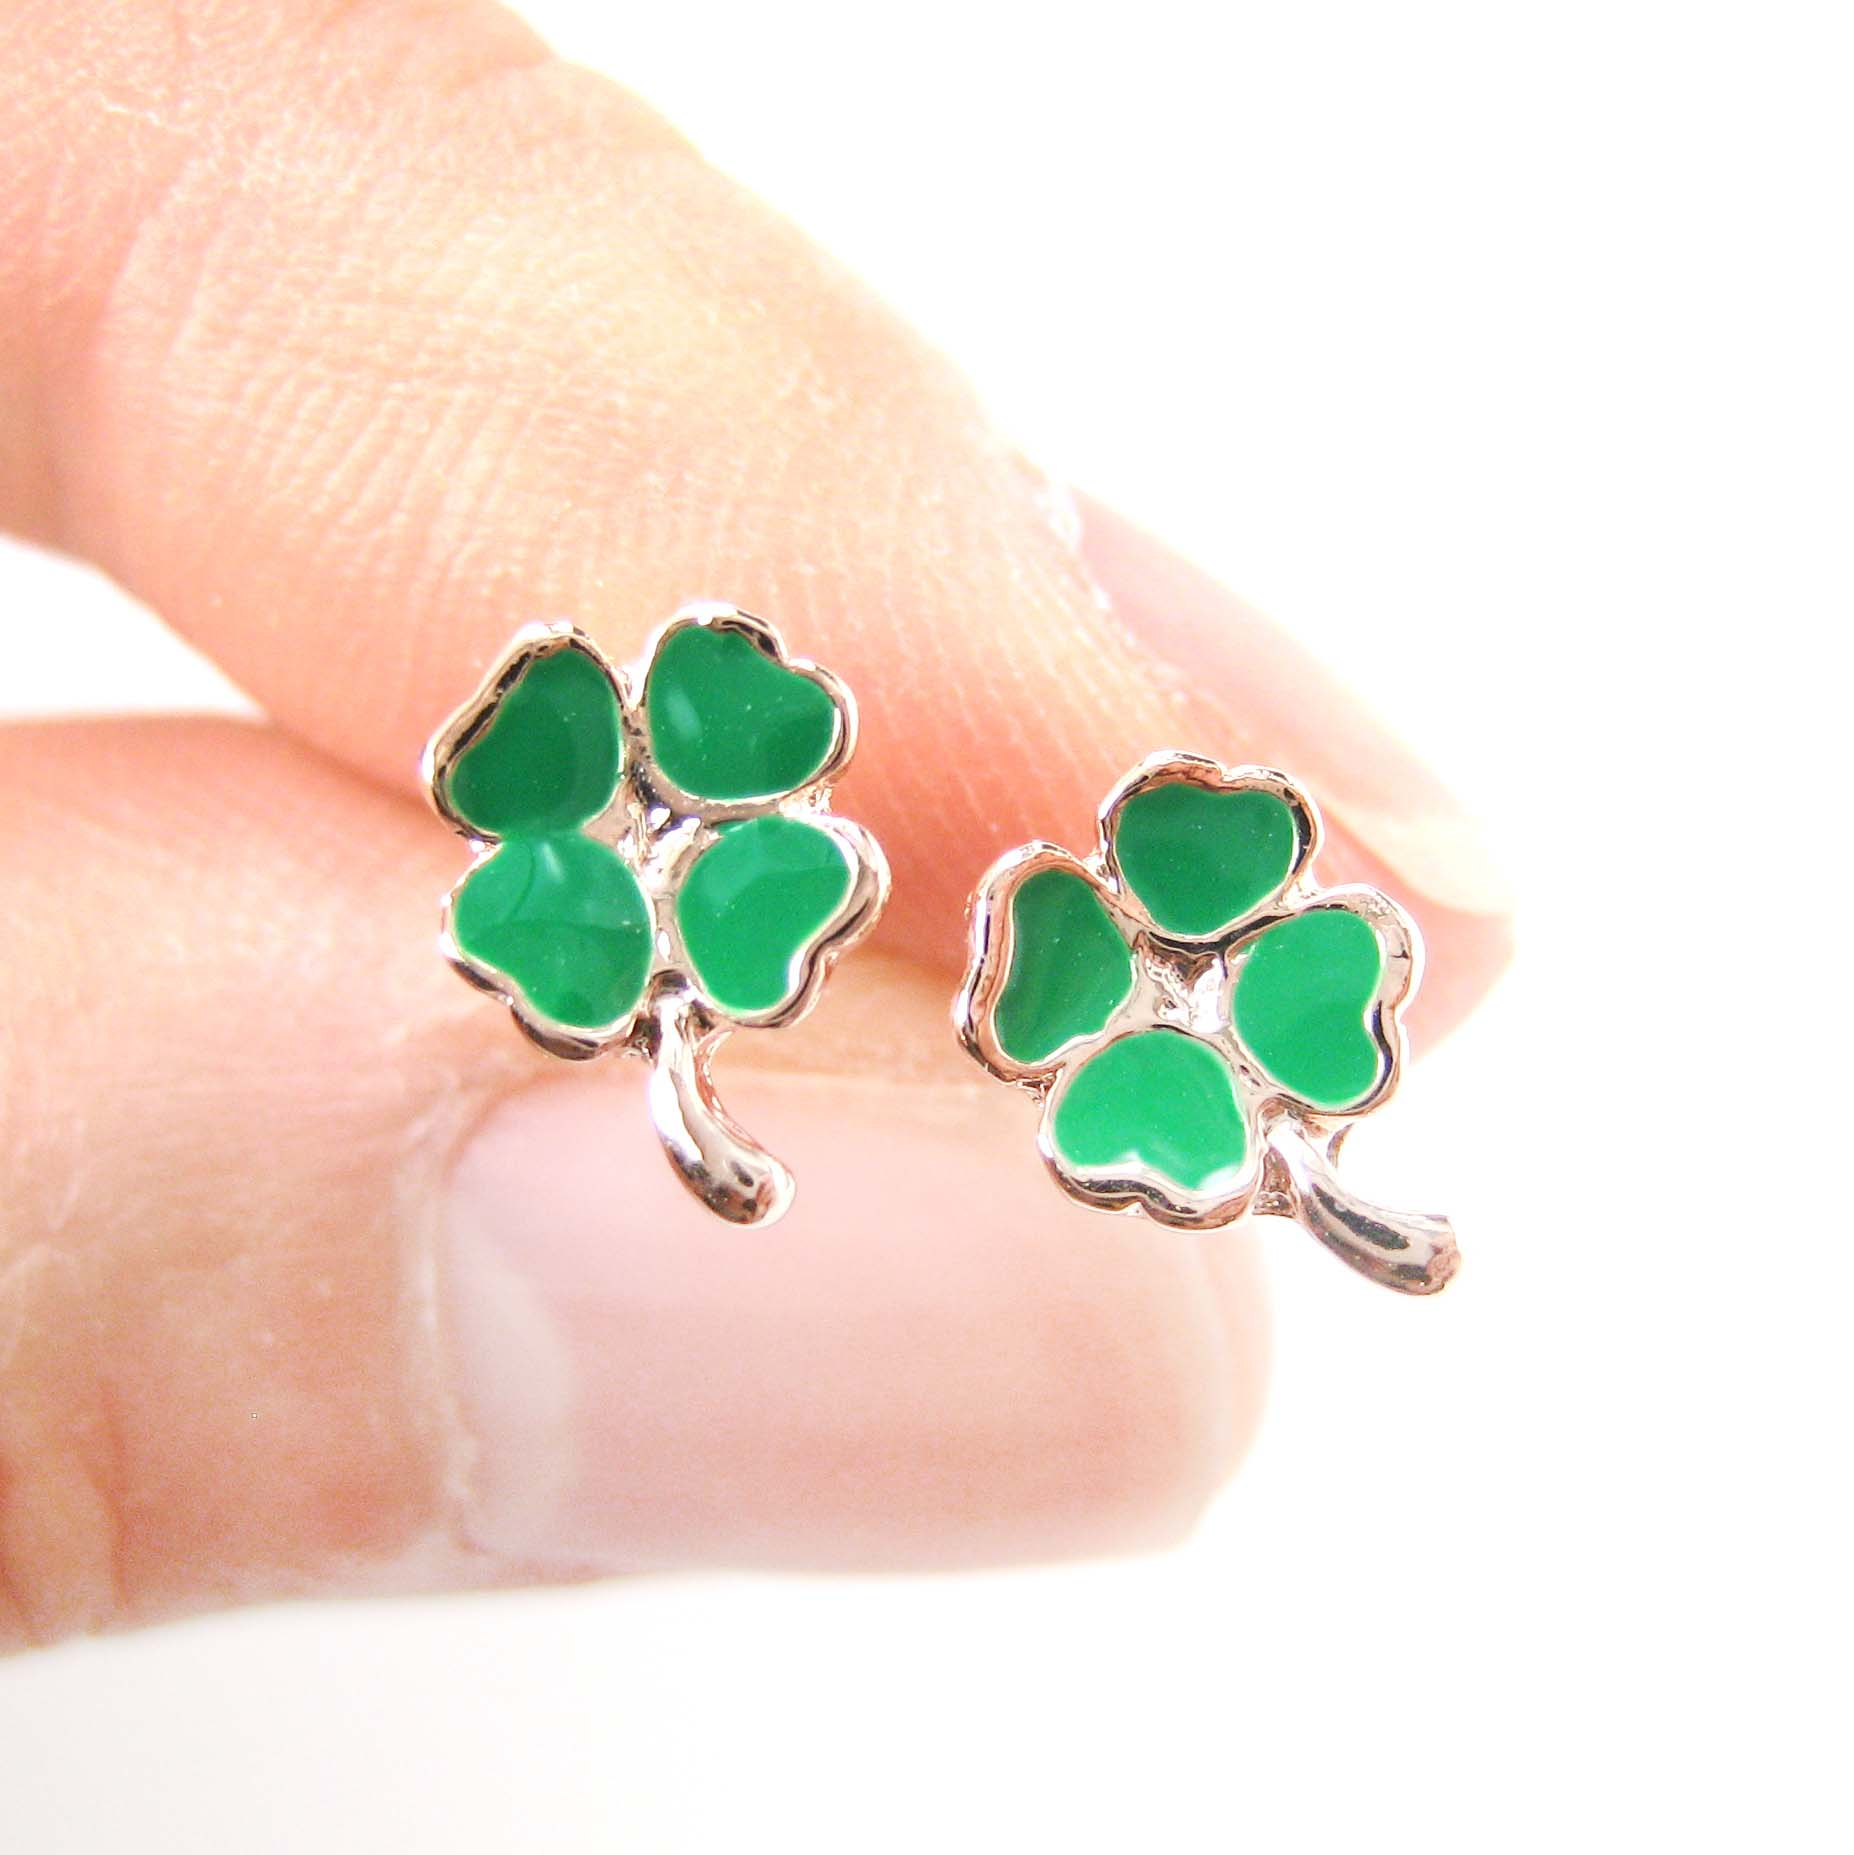 Dotoly Plus  Small Four Leaf Clover Shaped Stud Earrings. Cathedral Engagement Rings. Nixon Sentry Watches. Love Anklet. Pearl Wedding Rings. Beads Design. Names Chains. Female Rings. Ruby Bands